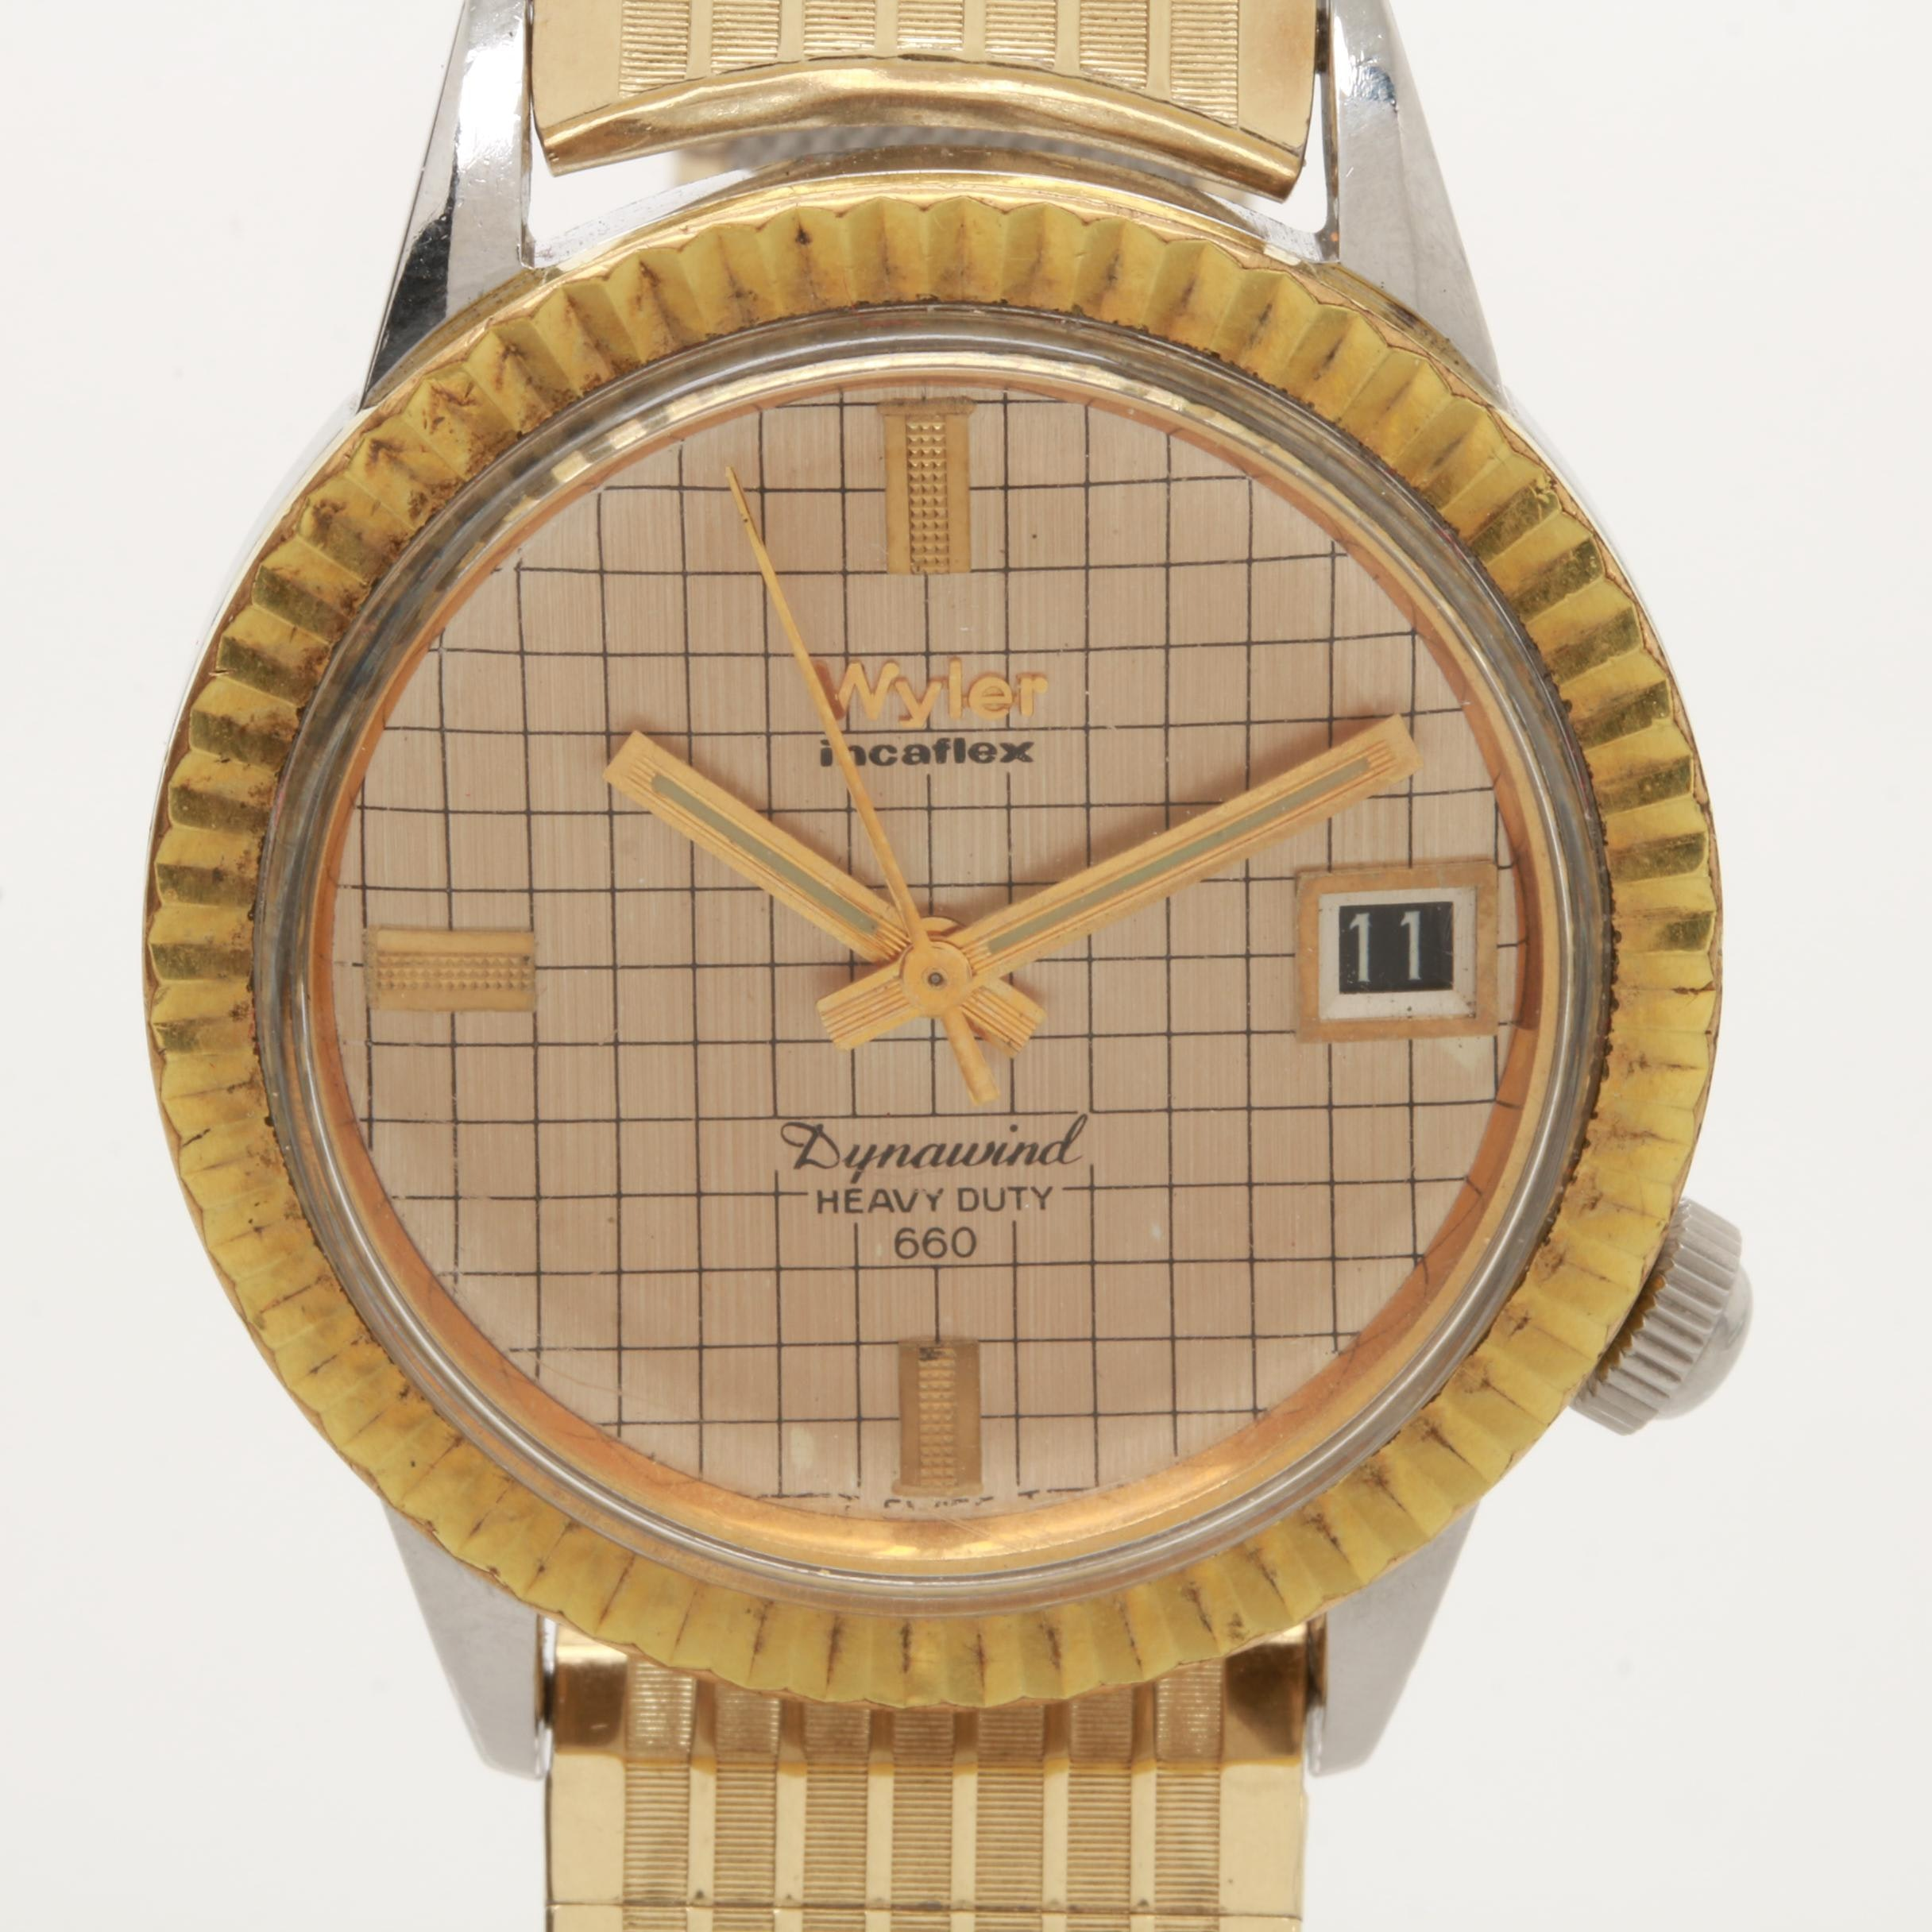 "Wyler Lifeguard ""Dynawind"" Automatic Wristwatch"